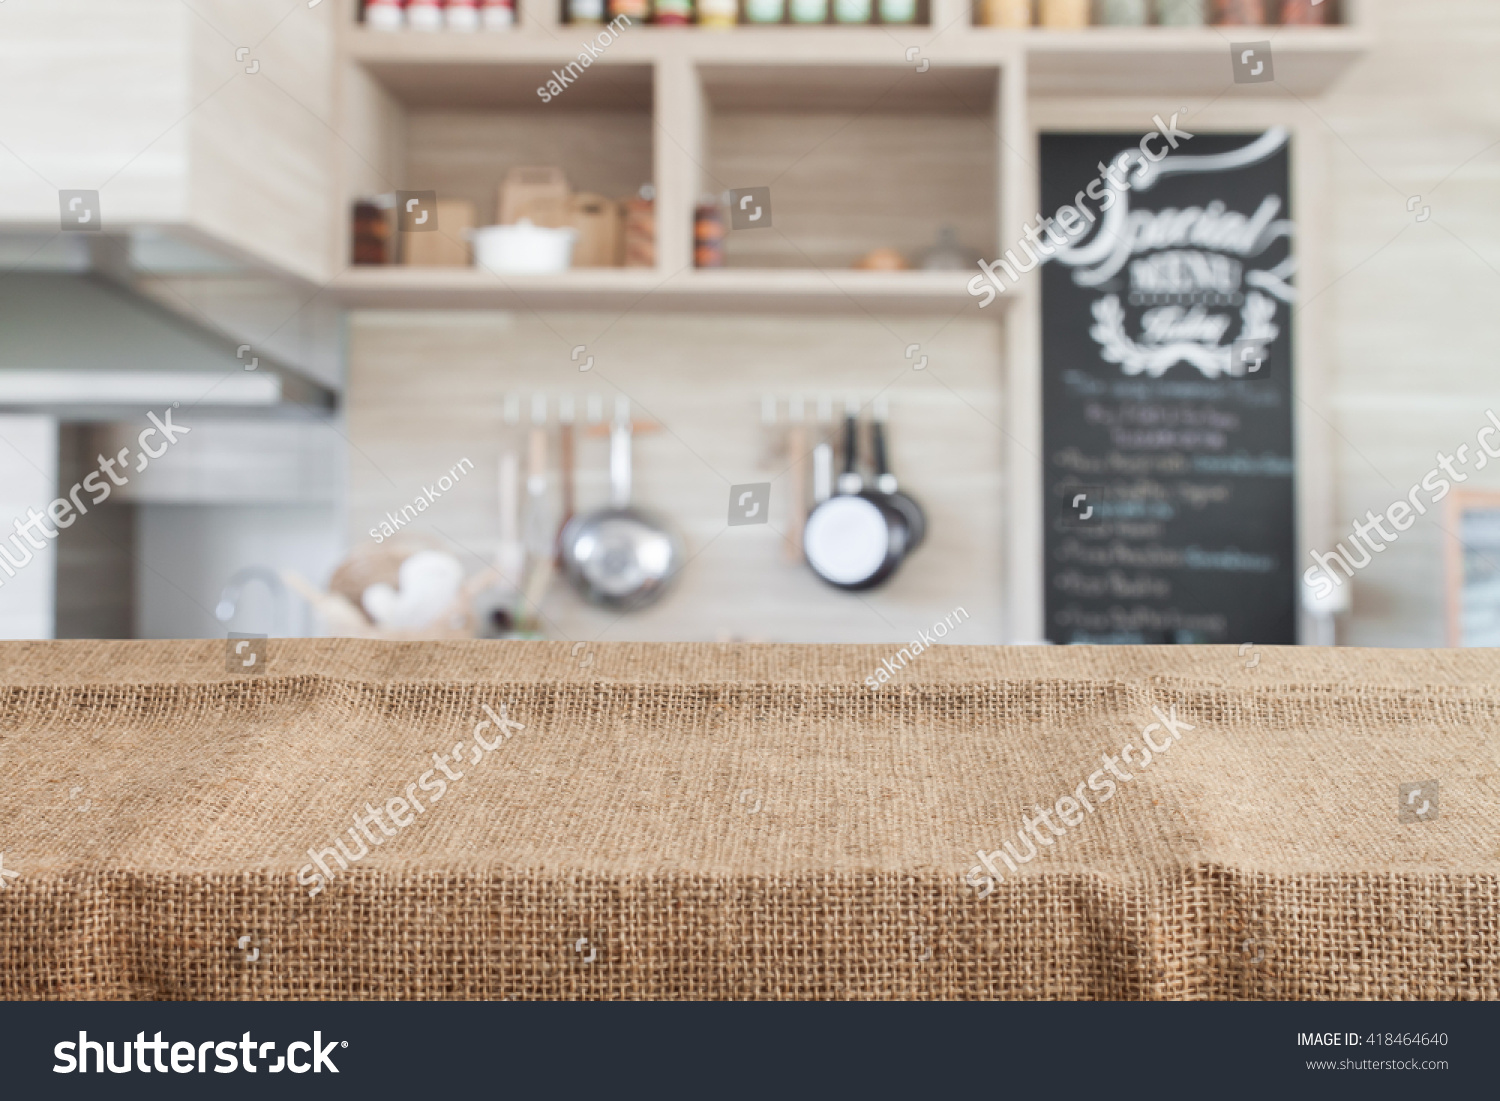 Empty wood table and blurred living room background stock photo - Burlap On Wood Table Top With Blur Kitchen Background Empty Wooden Table For Product Display